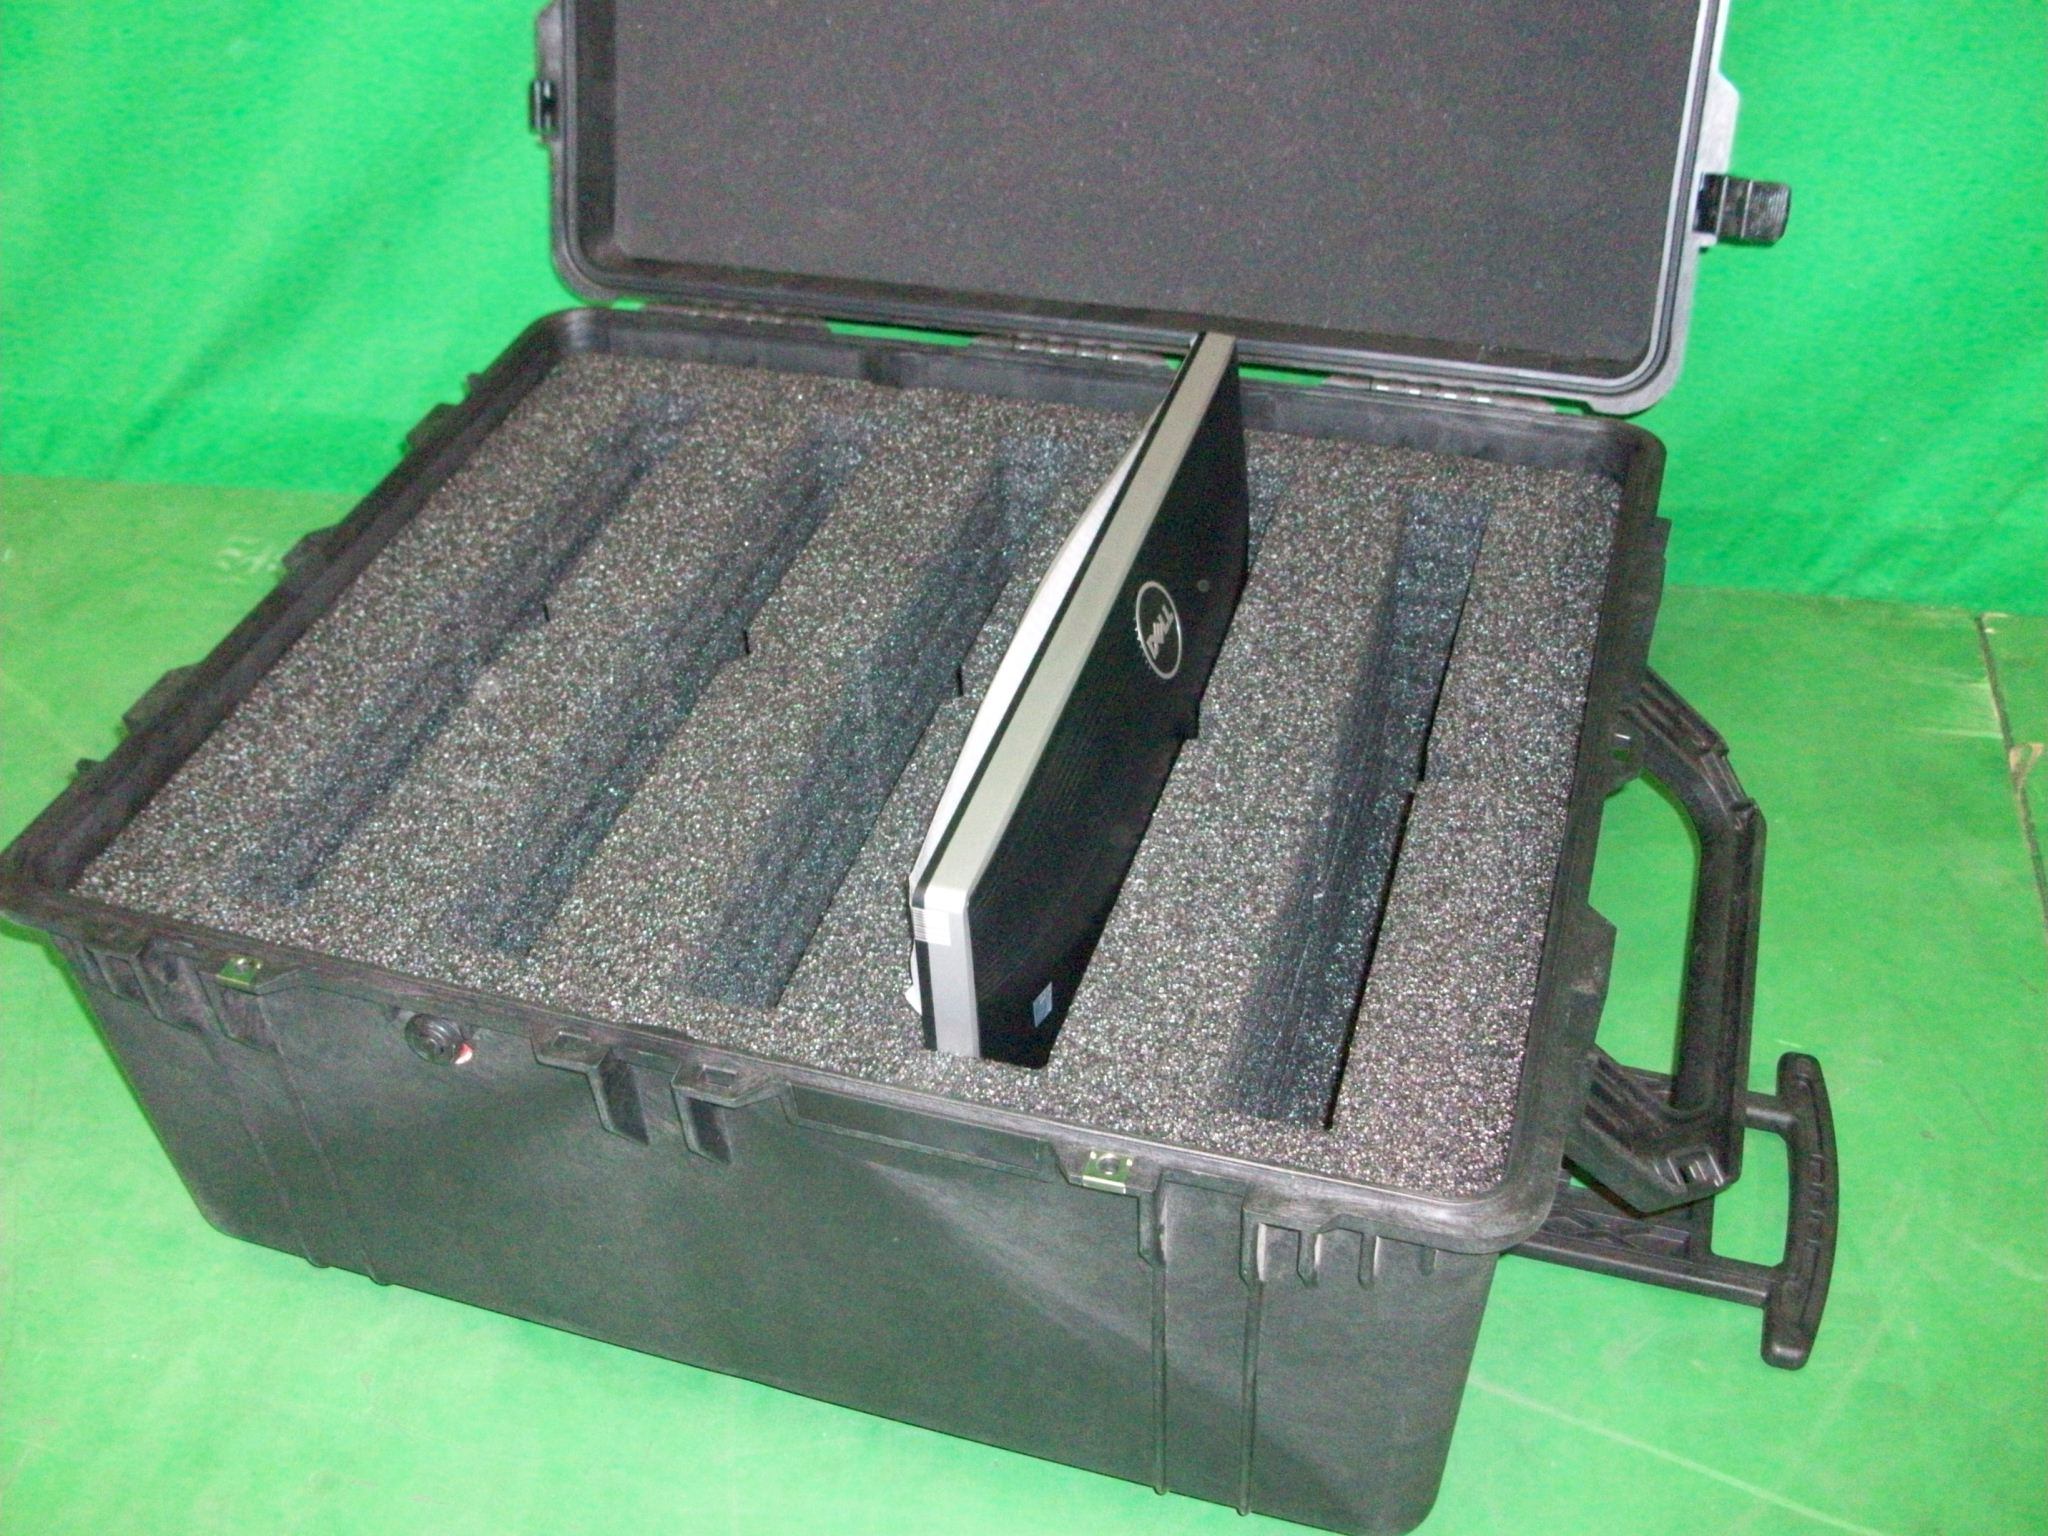 Print # 6318 - Pelican Case 1690 with Custom Foam Insert to hold (5) Dell U2412MB LCD Monitors  By Nelson Case Corp